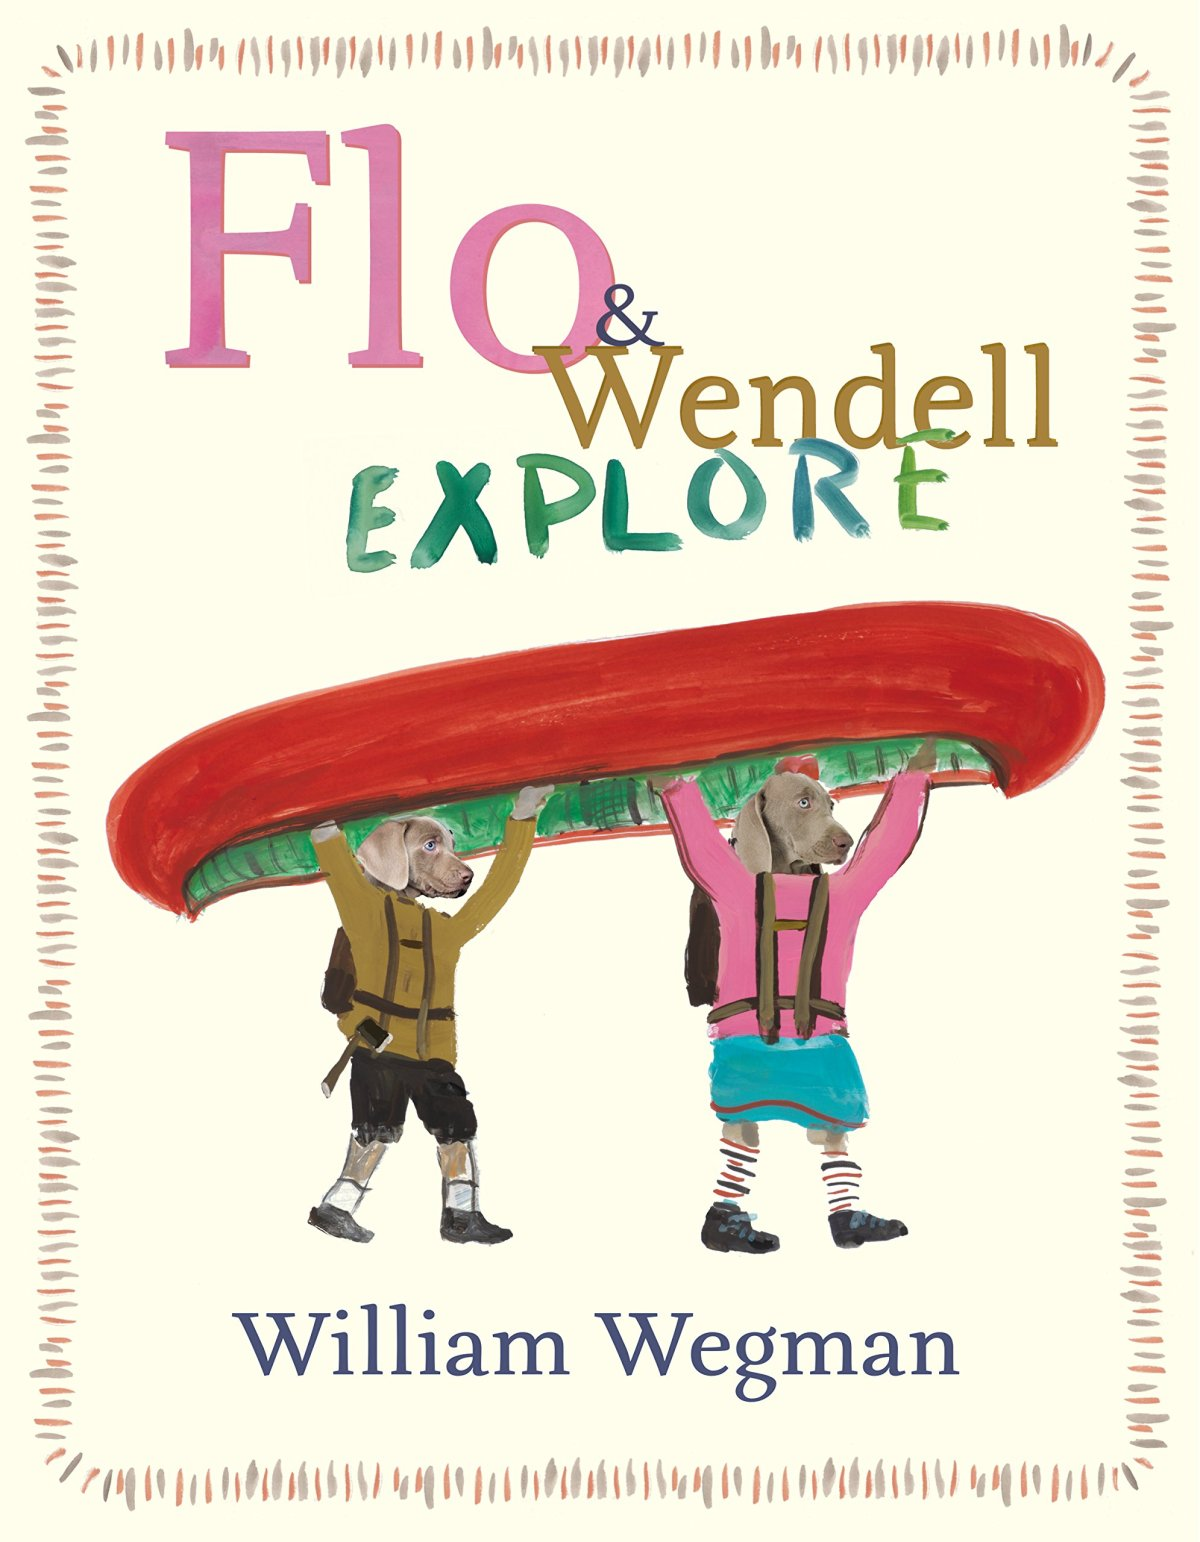 flo and wendell explore cover image